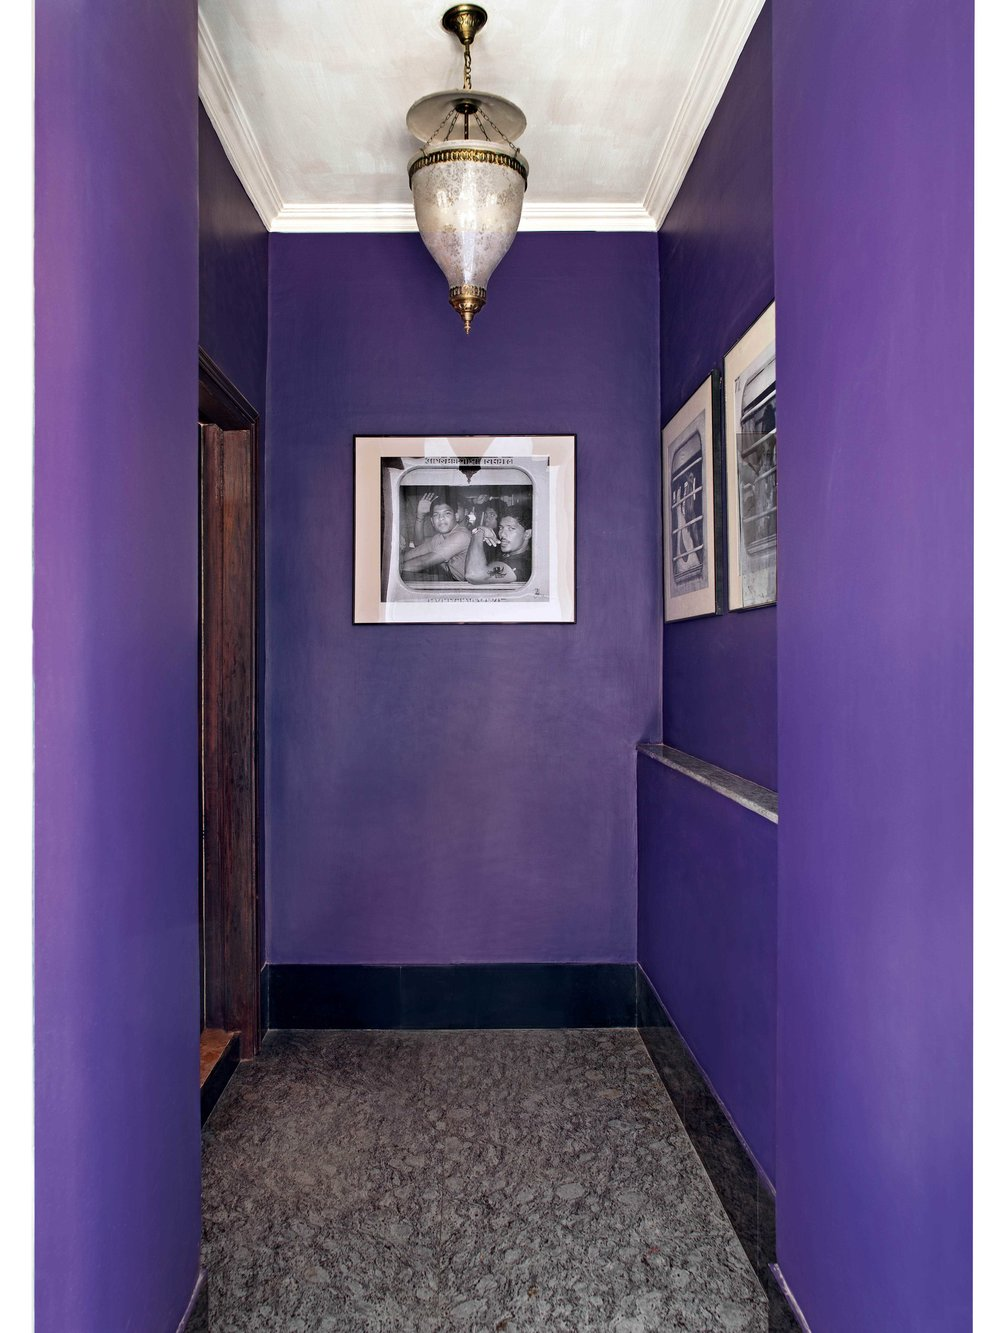 The entryway has aubergine-coloured walls adorned with photographs depicting travellers in a three-tier sleeper train. A traditional lamp hangs from the ceiling.